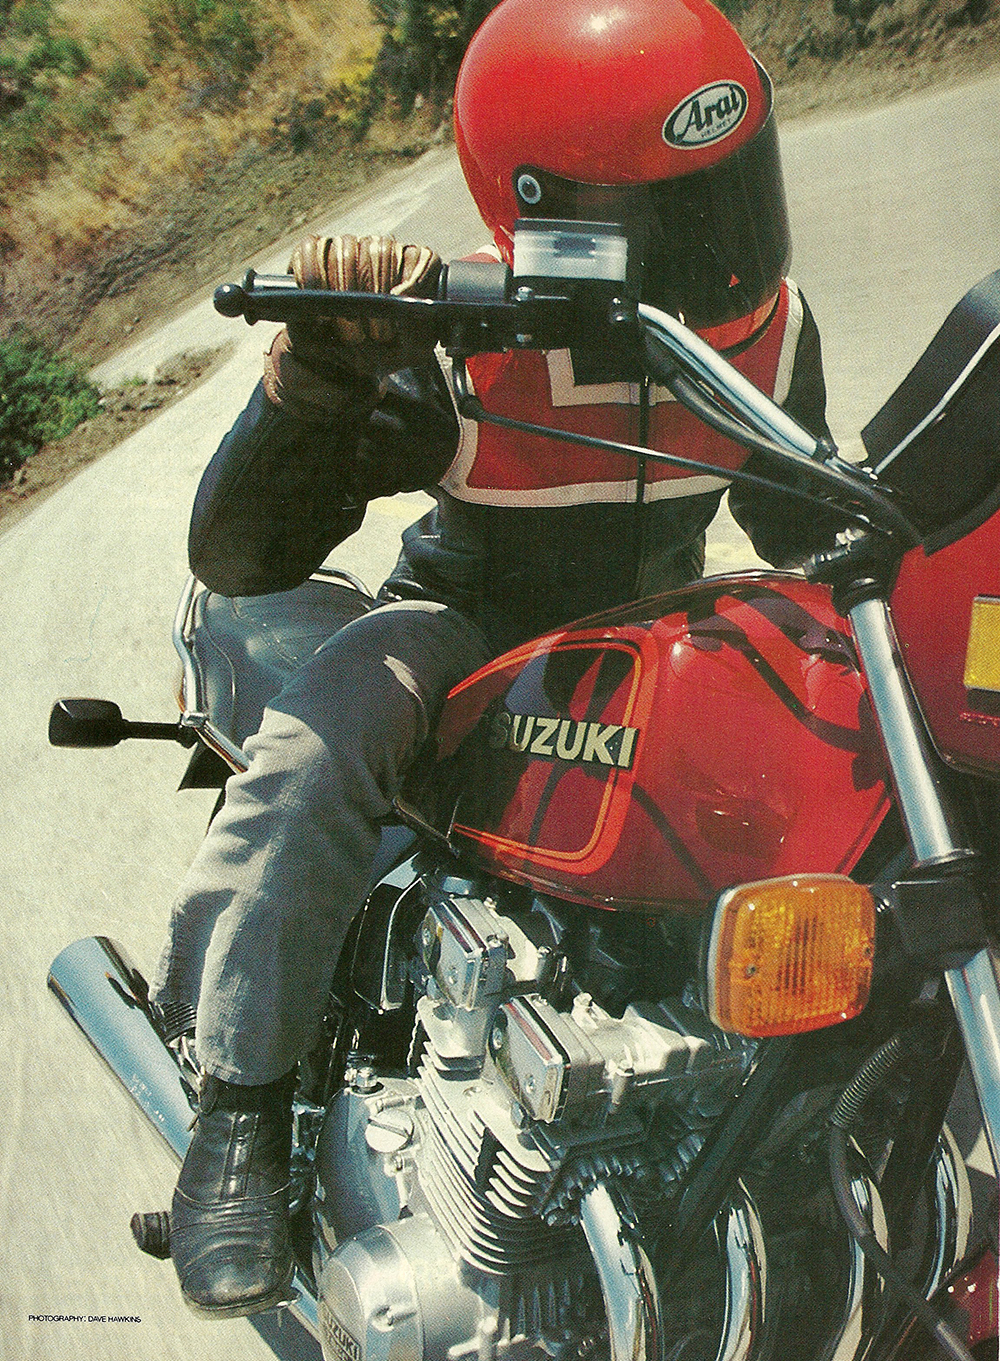 1981 Suzuki GS750 EX road test 01.jpg